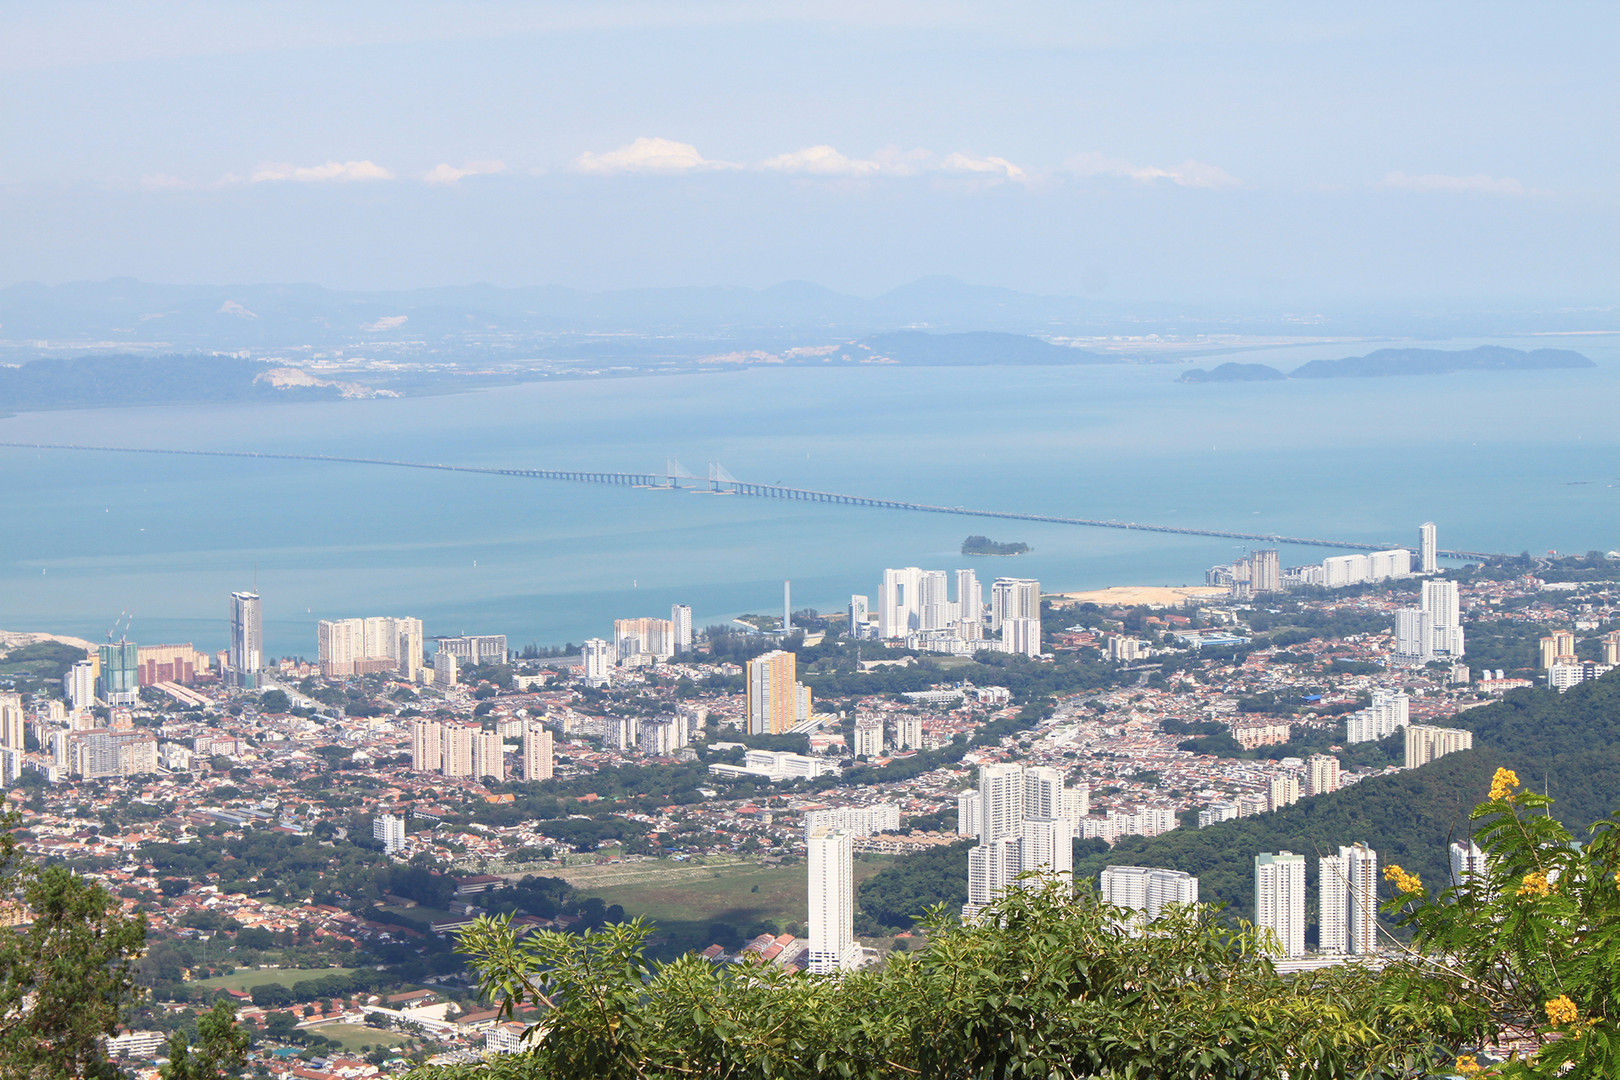 Panoramic View from Penang Hill